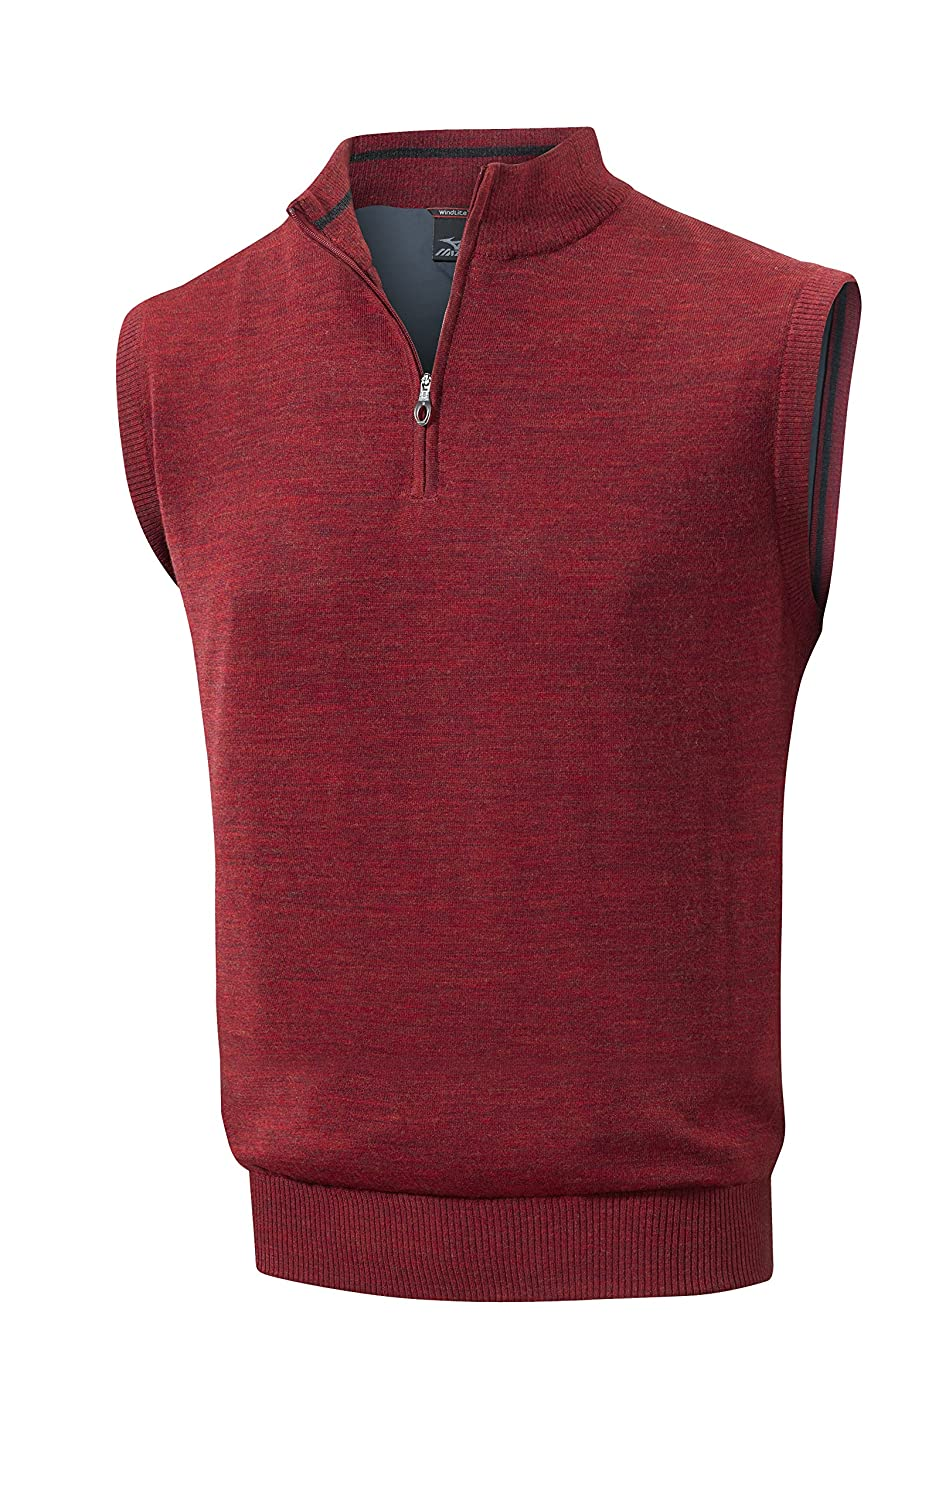 Amazon.com: Mizuno Golf- Hayate Sweater Vest: Sports & Outdoors